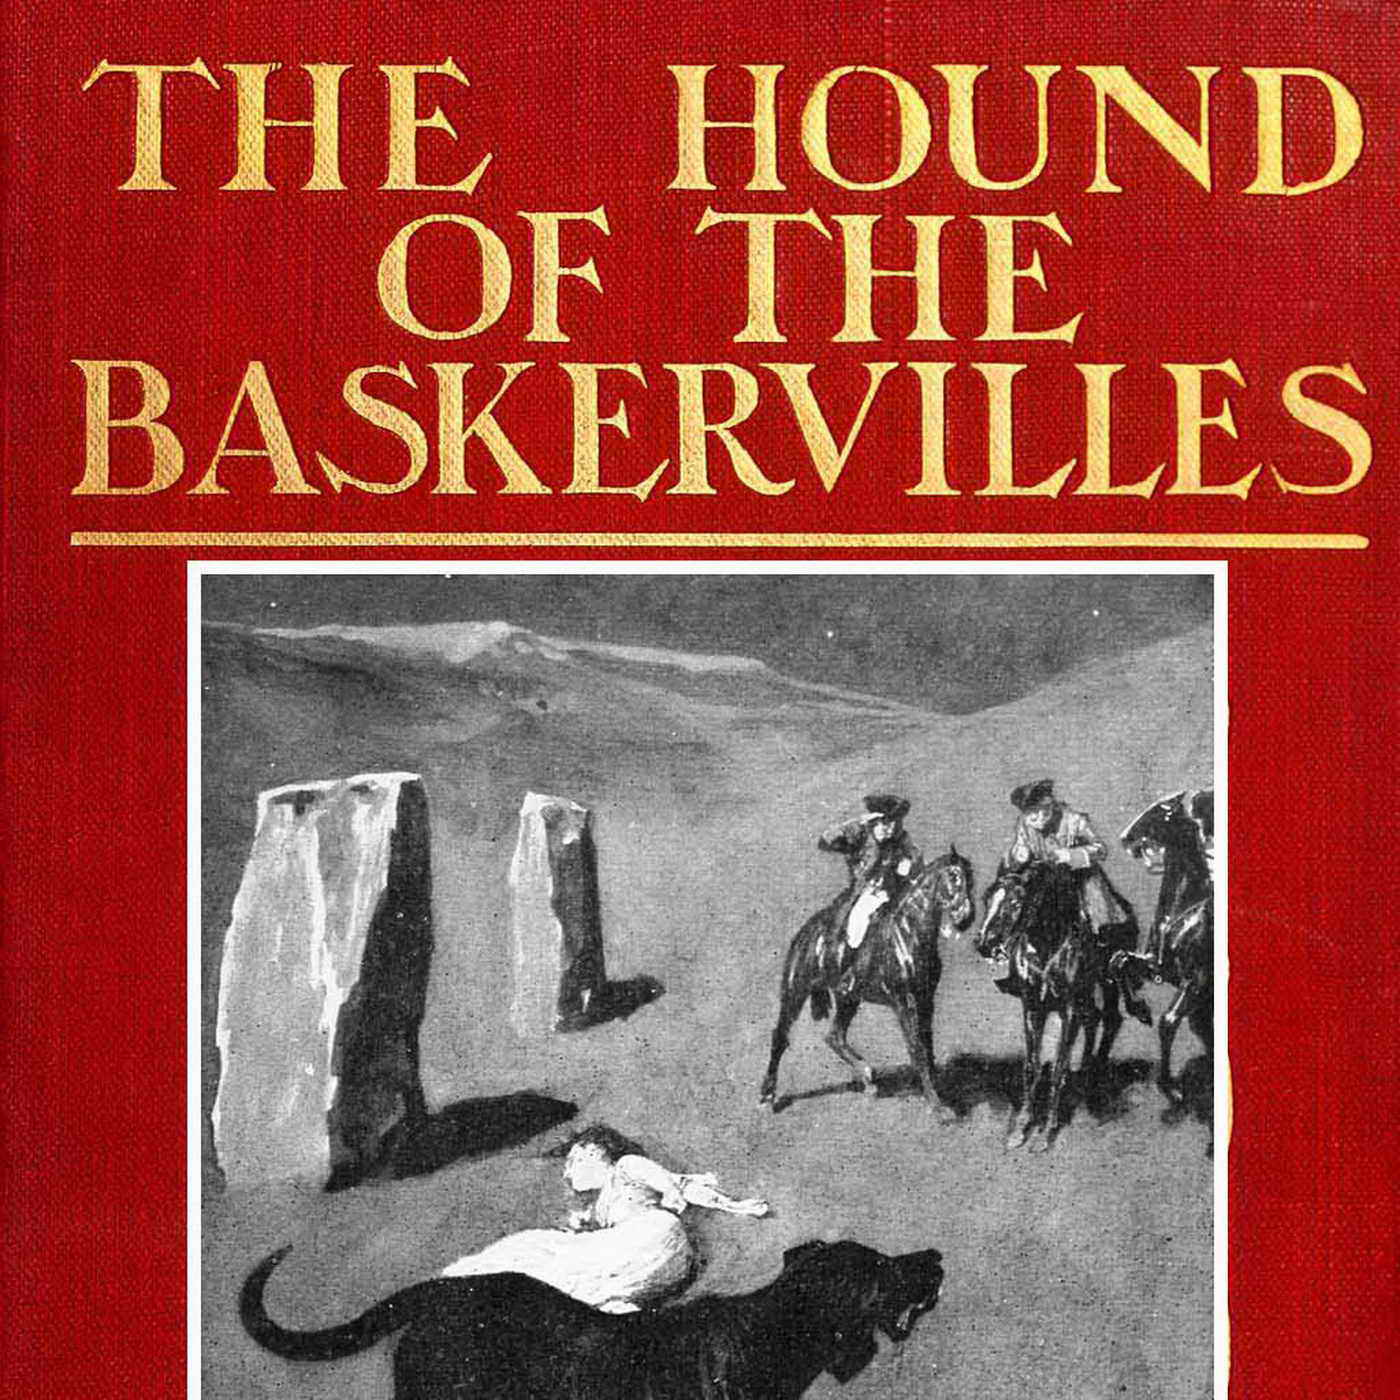 hounds of the baskervilles The hound of the baskervilles is the third of the crime novels written by sir arthur conan doyle featuring the detective sherlock holmes.